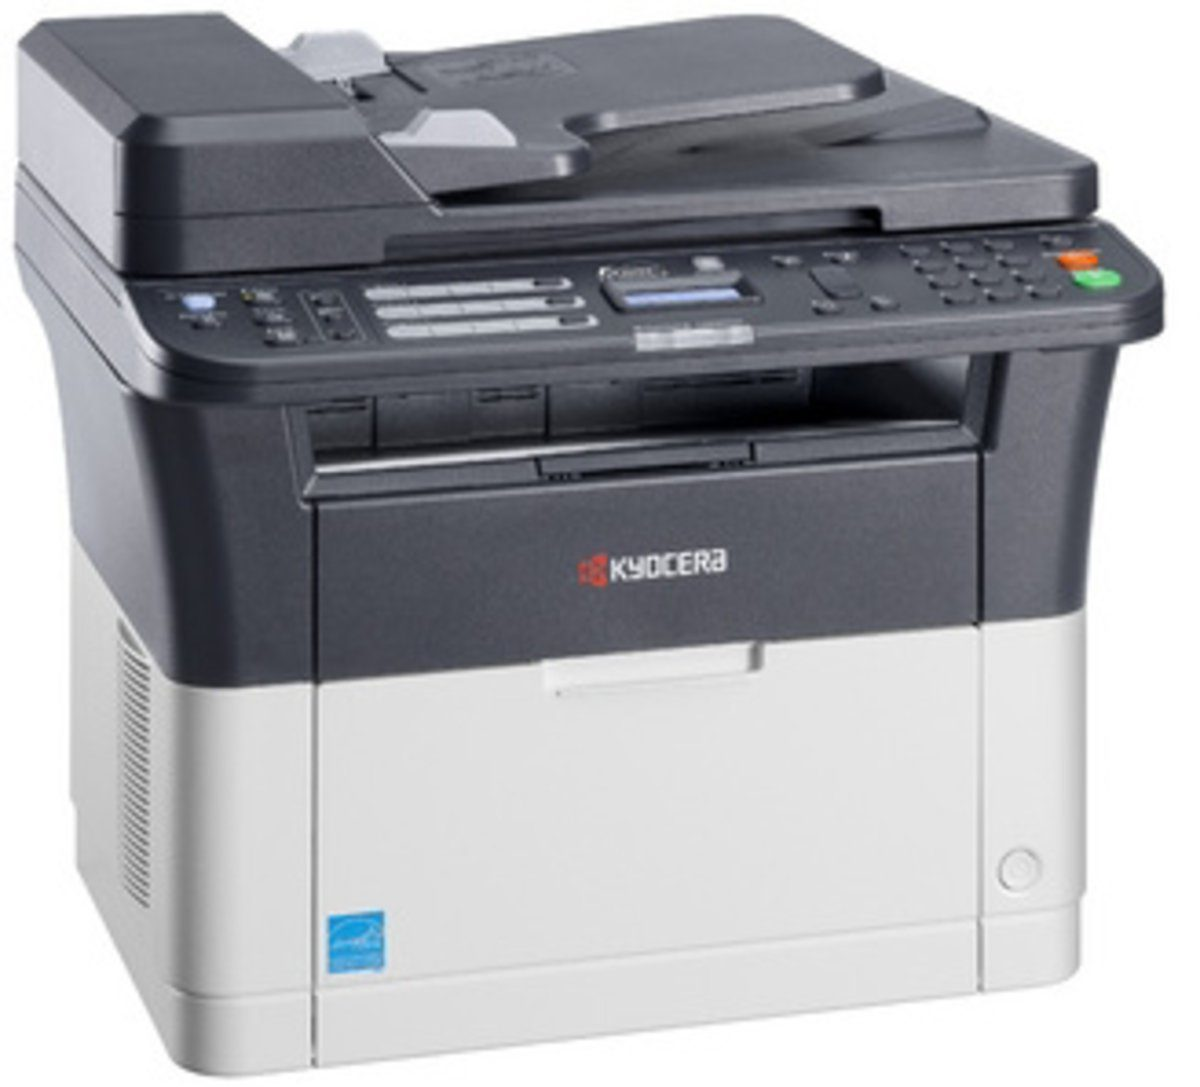 Kyocera Monolaser-Multifunktionsdrucker »4in1 Mono-Multifunktionsdrucker«